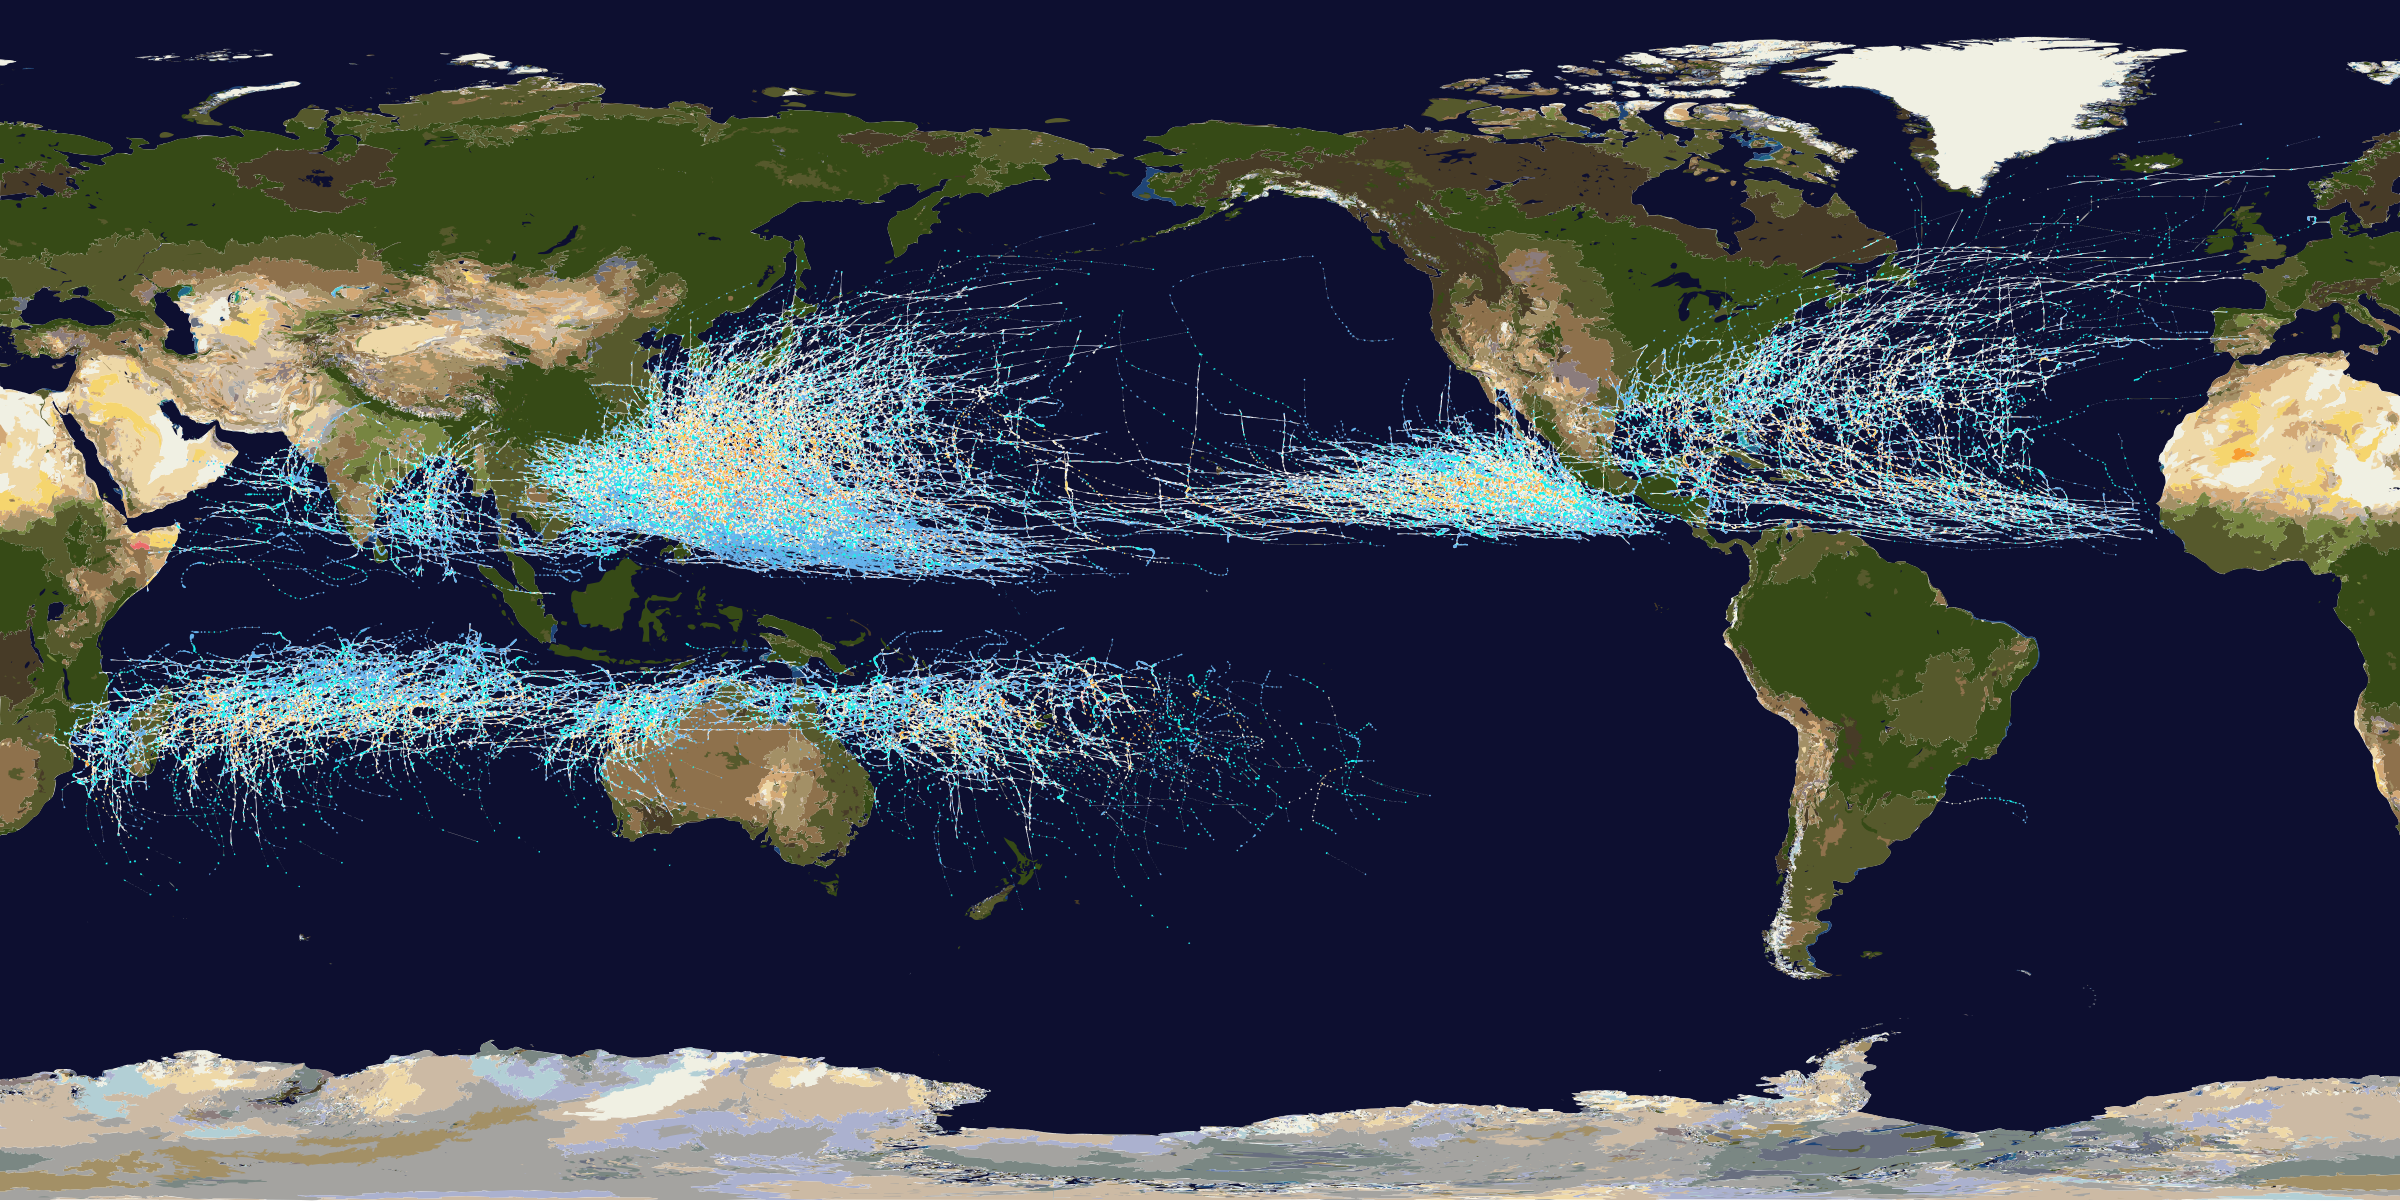 Global tropical cyclone tracks-edit2 by 5mxax3+4sizrcp4eekco